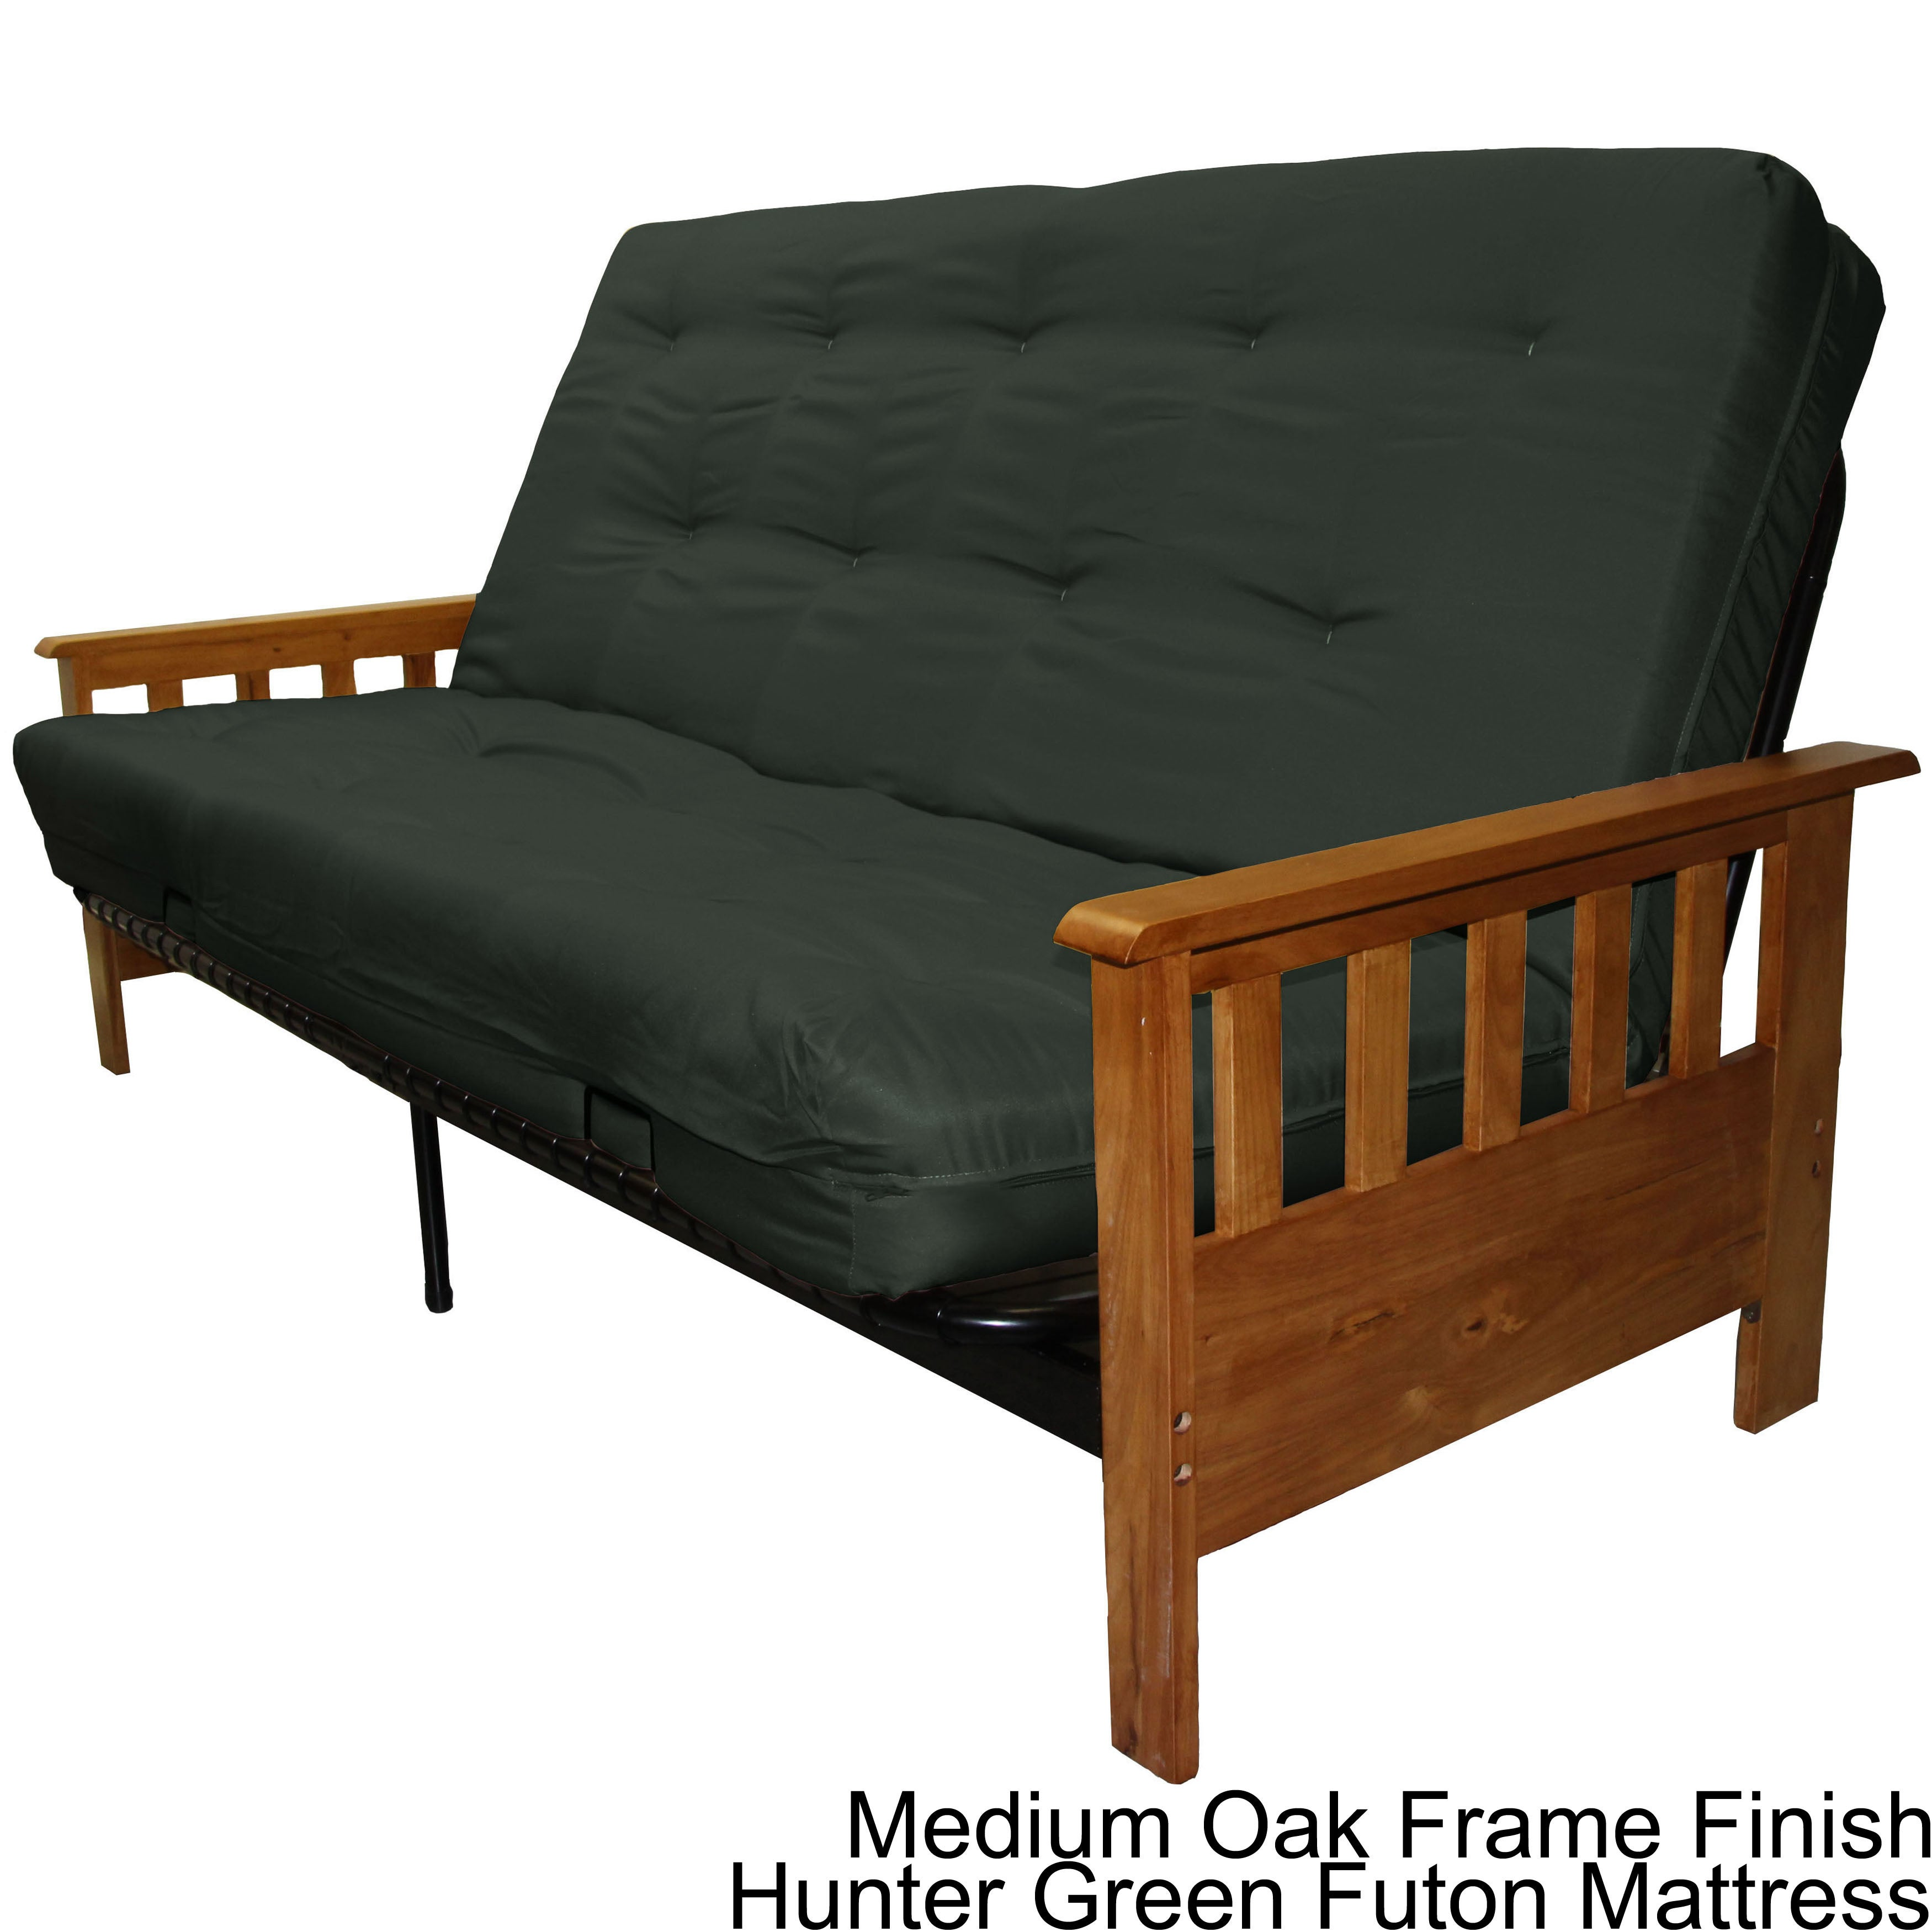 Provo Mission Style Frame And Queen Size Futon Mattress Set Free Shipping Today Com 4306750